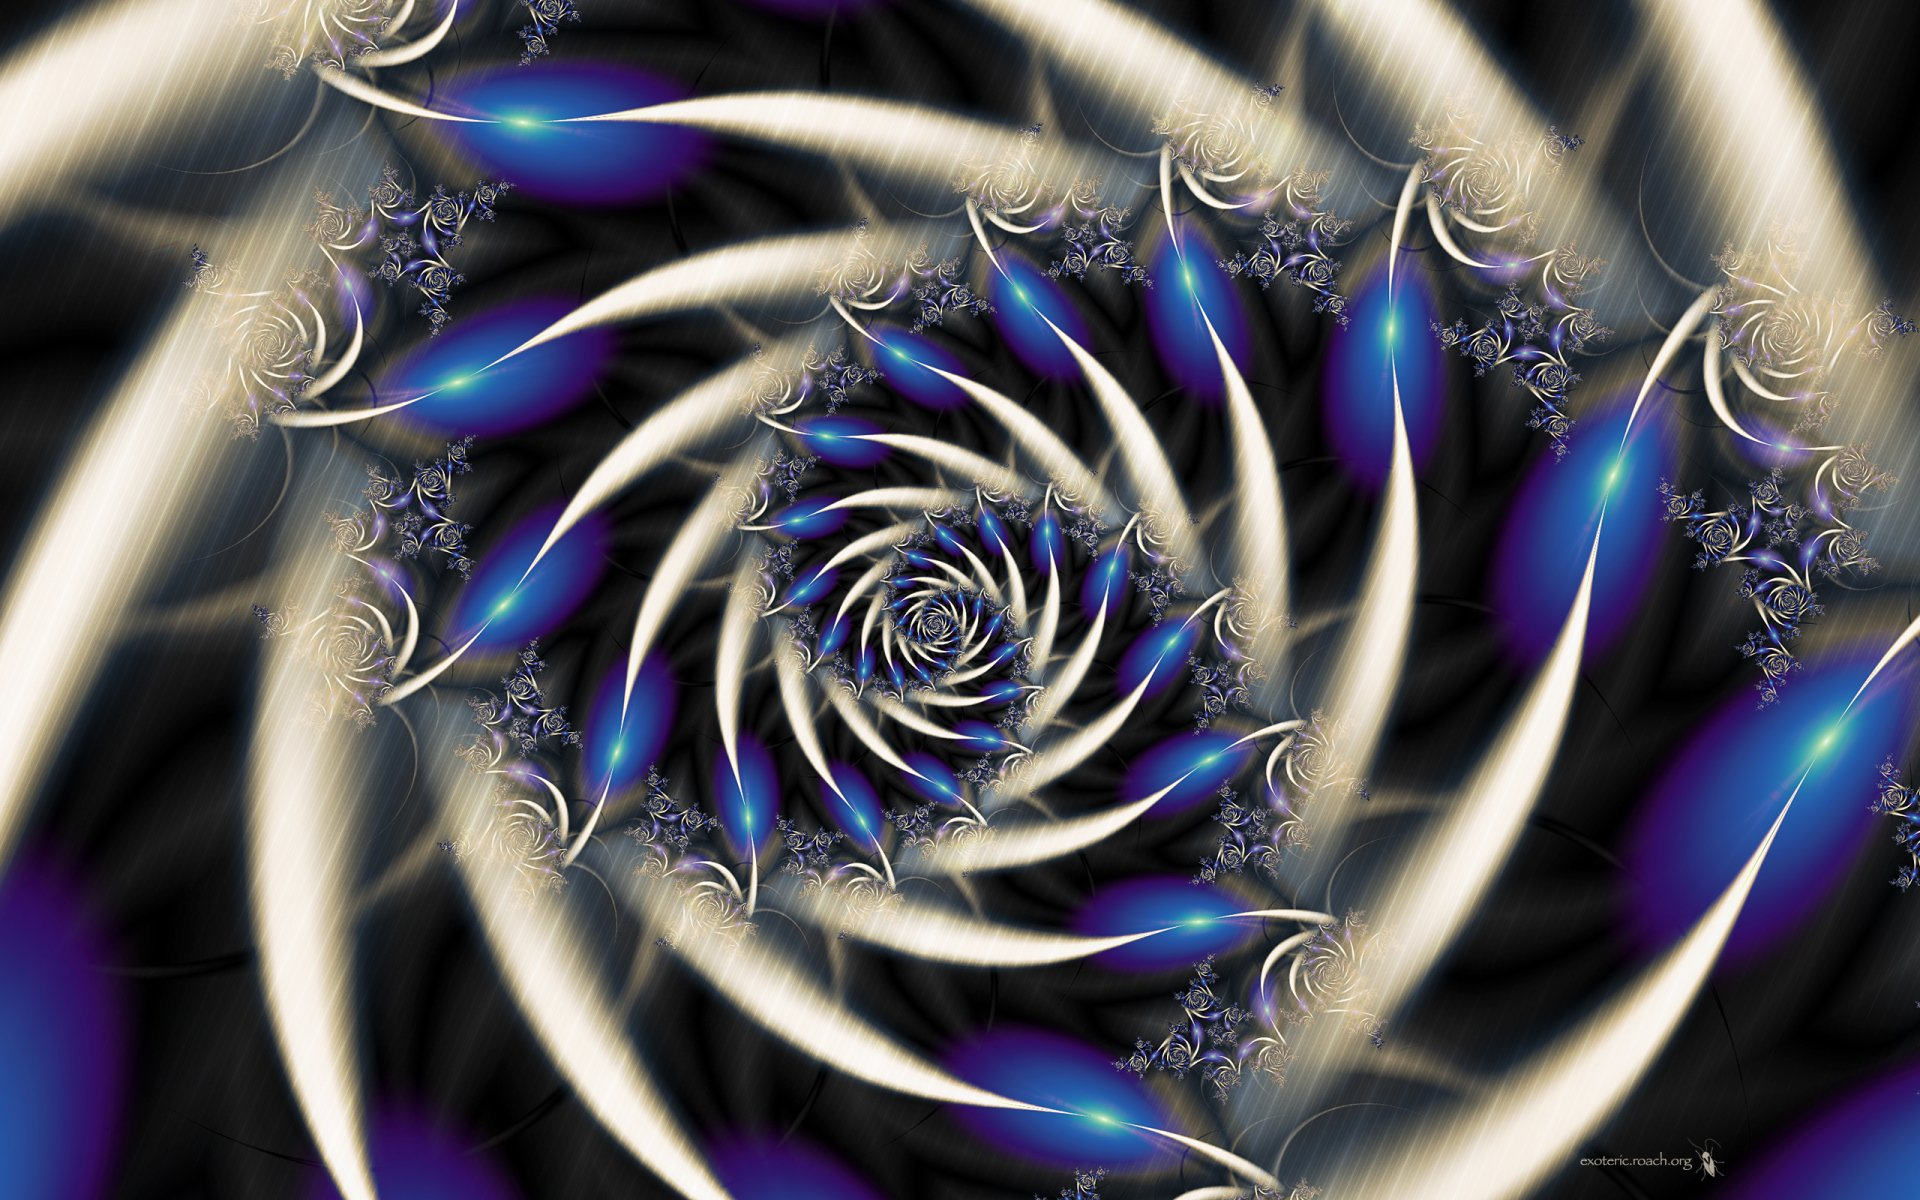 Pattern - Abstract  Digital Fractal Artistic Wallpaper